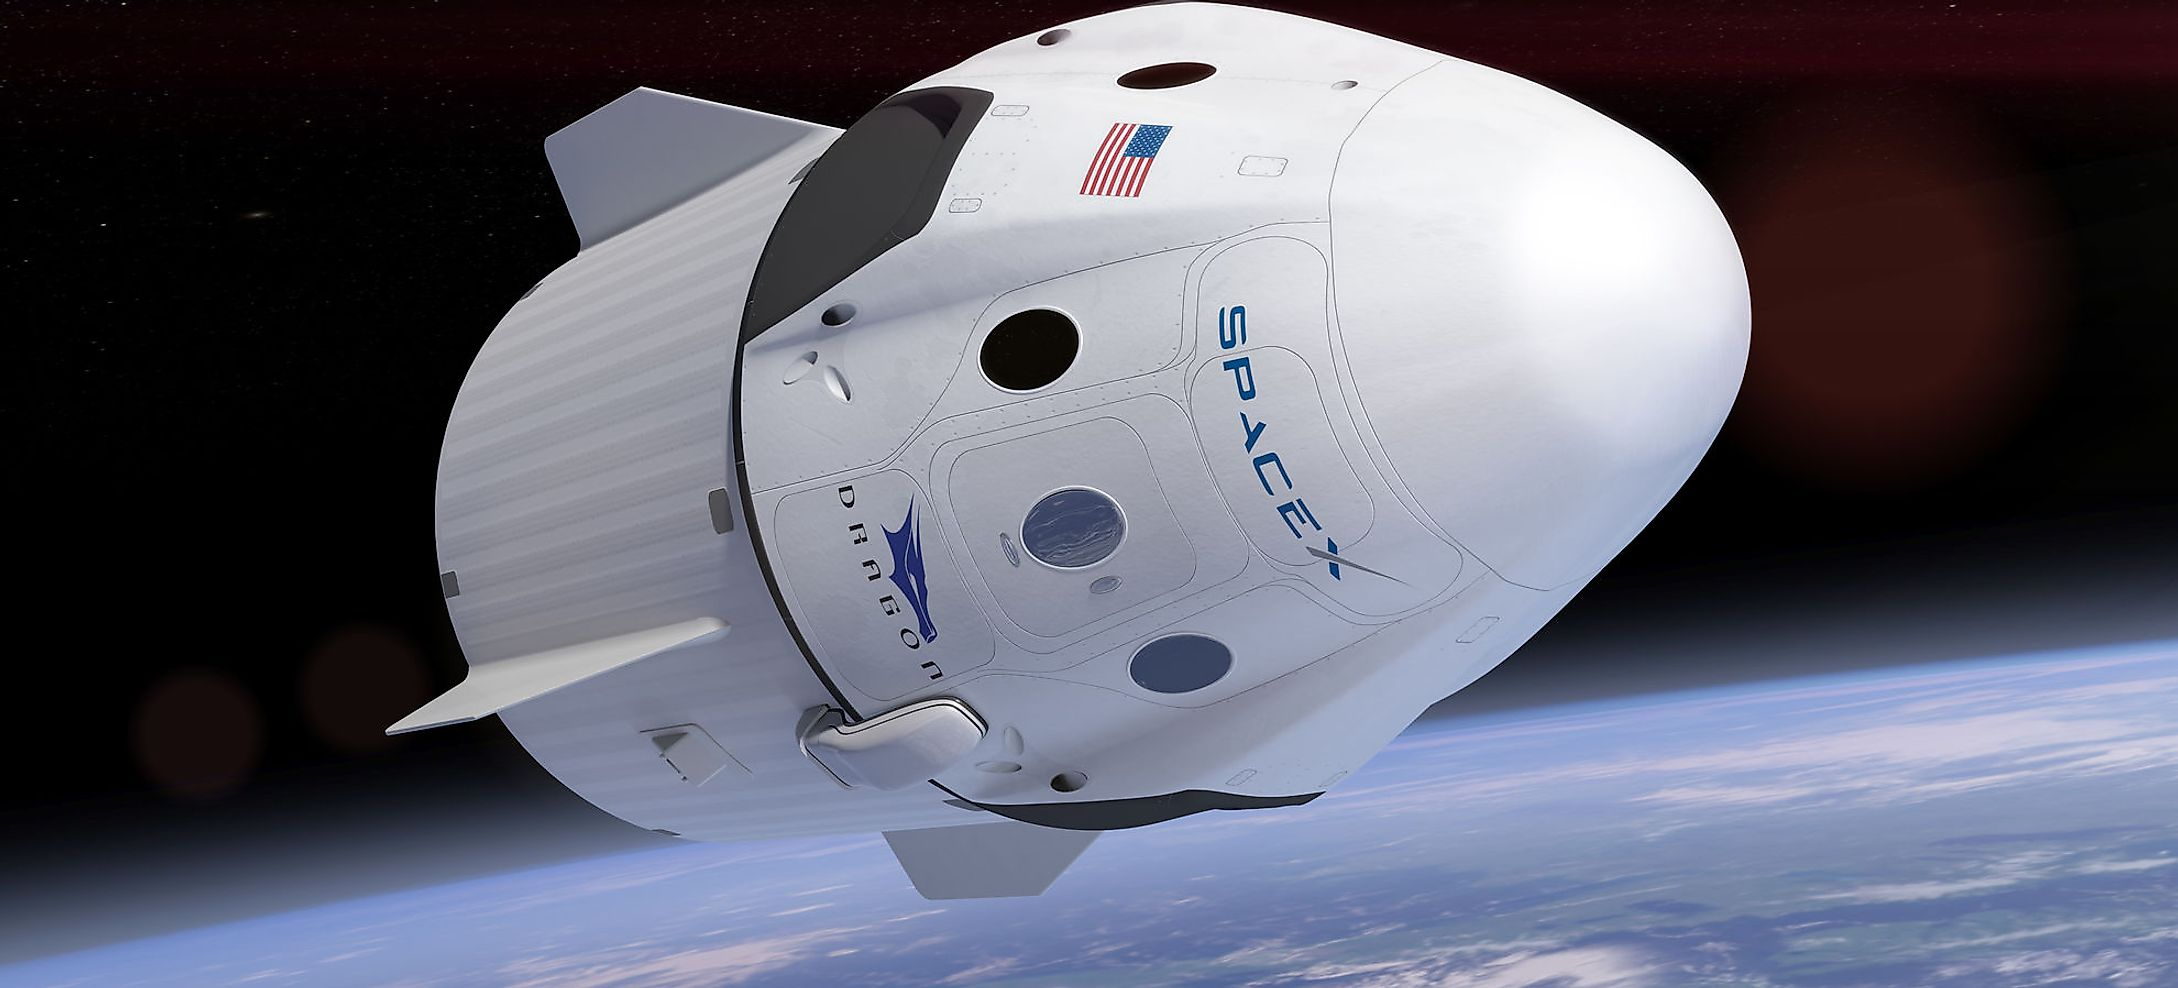 SpaceX's Crew Dragon mission has been in development for years, but there have been many delays. Image credit: www.spacex.com